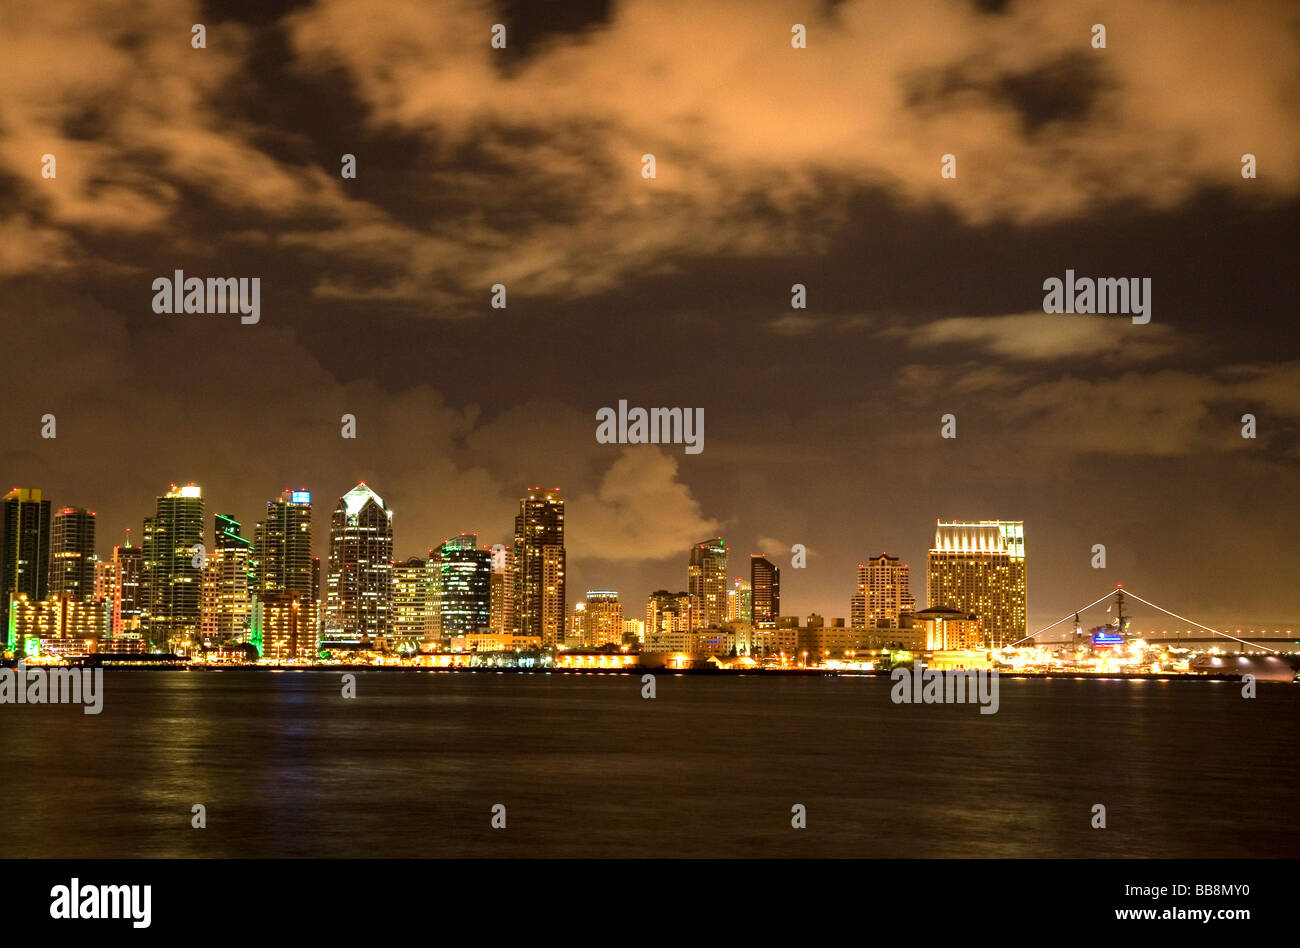 San Diego skyline at night in Southern California USA  - Stock Image